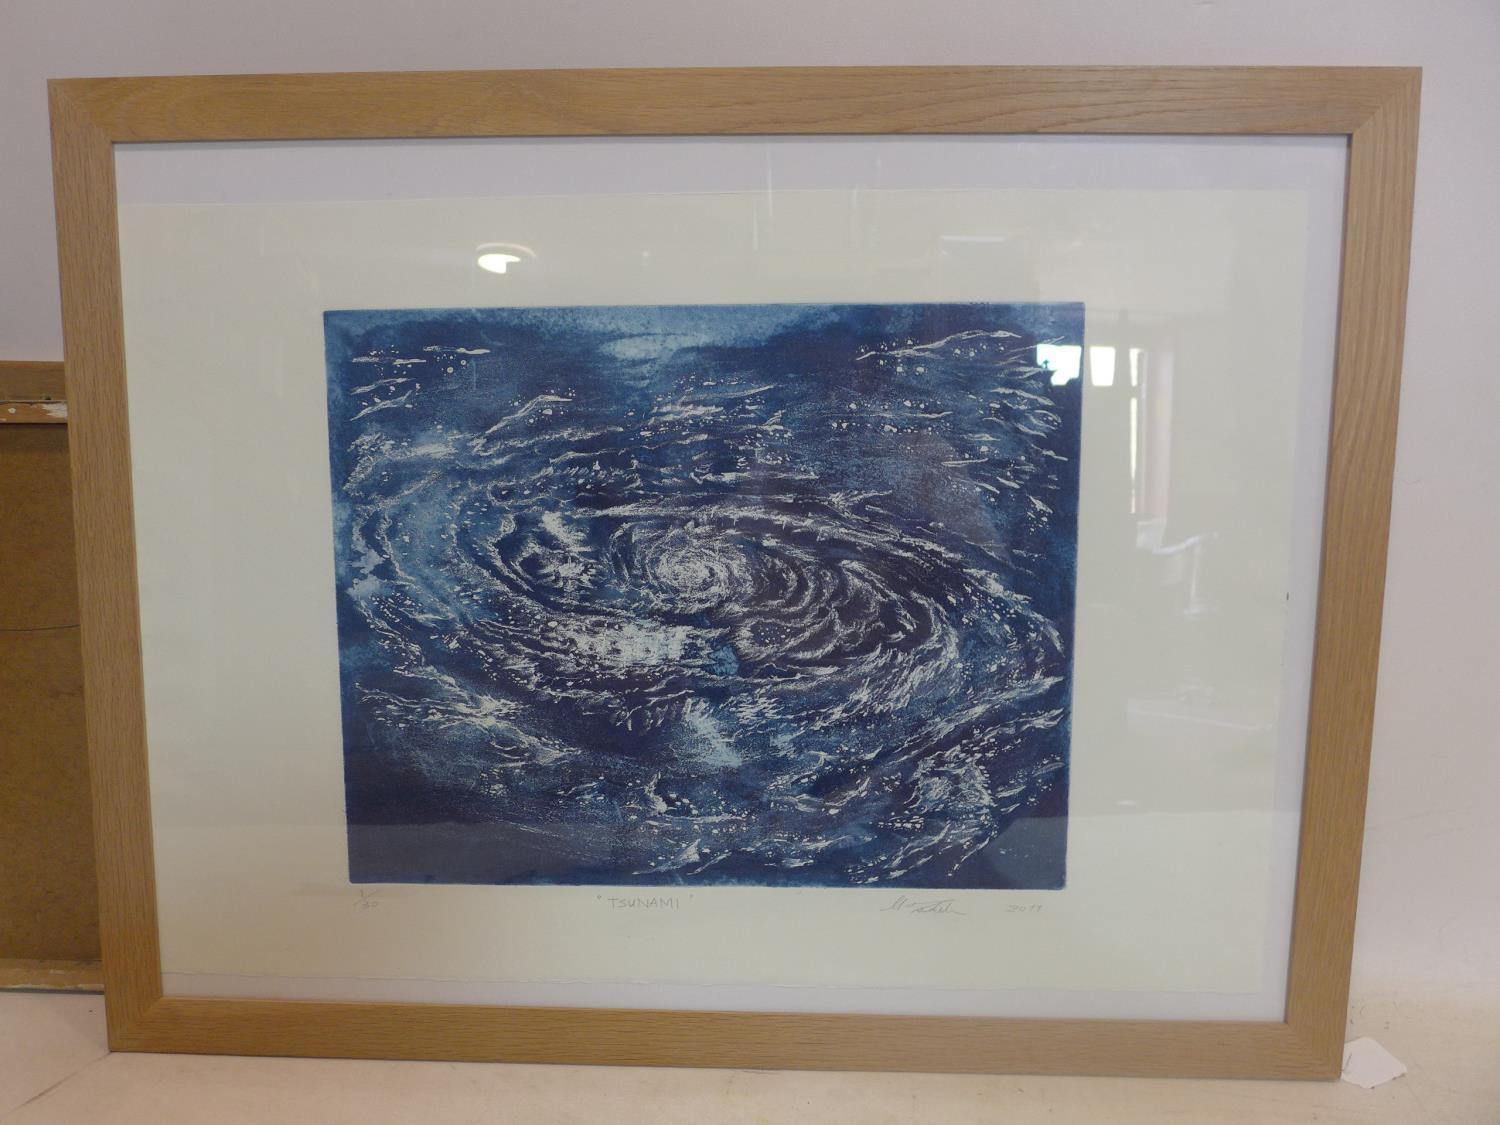 Lot 705 - Misao Tsukida (1953-2012), 'Tsunami', etching and aquatint, signed and dated 2011 in pencil to lower